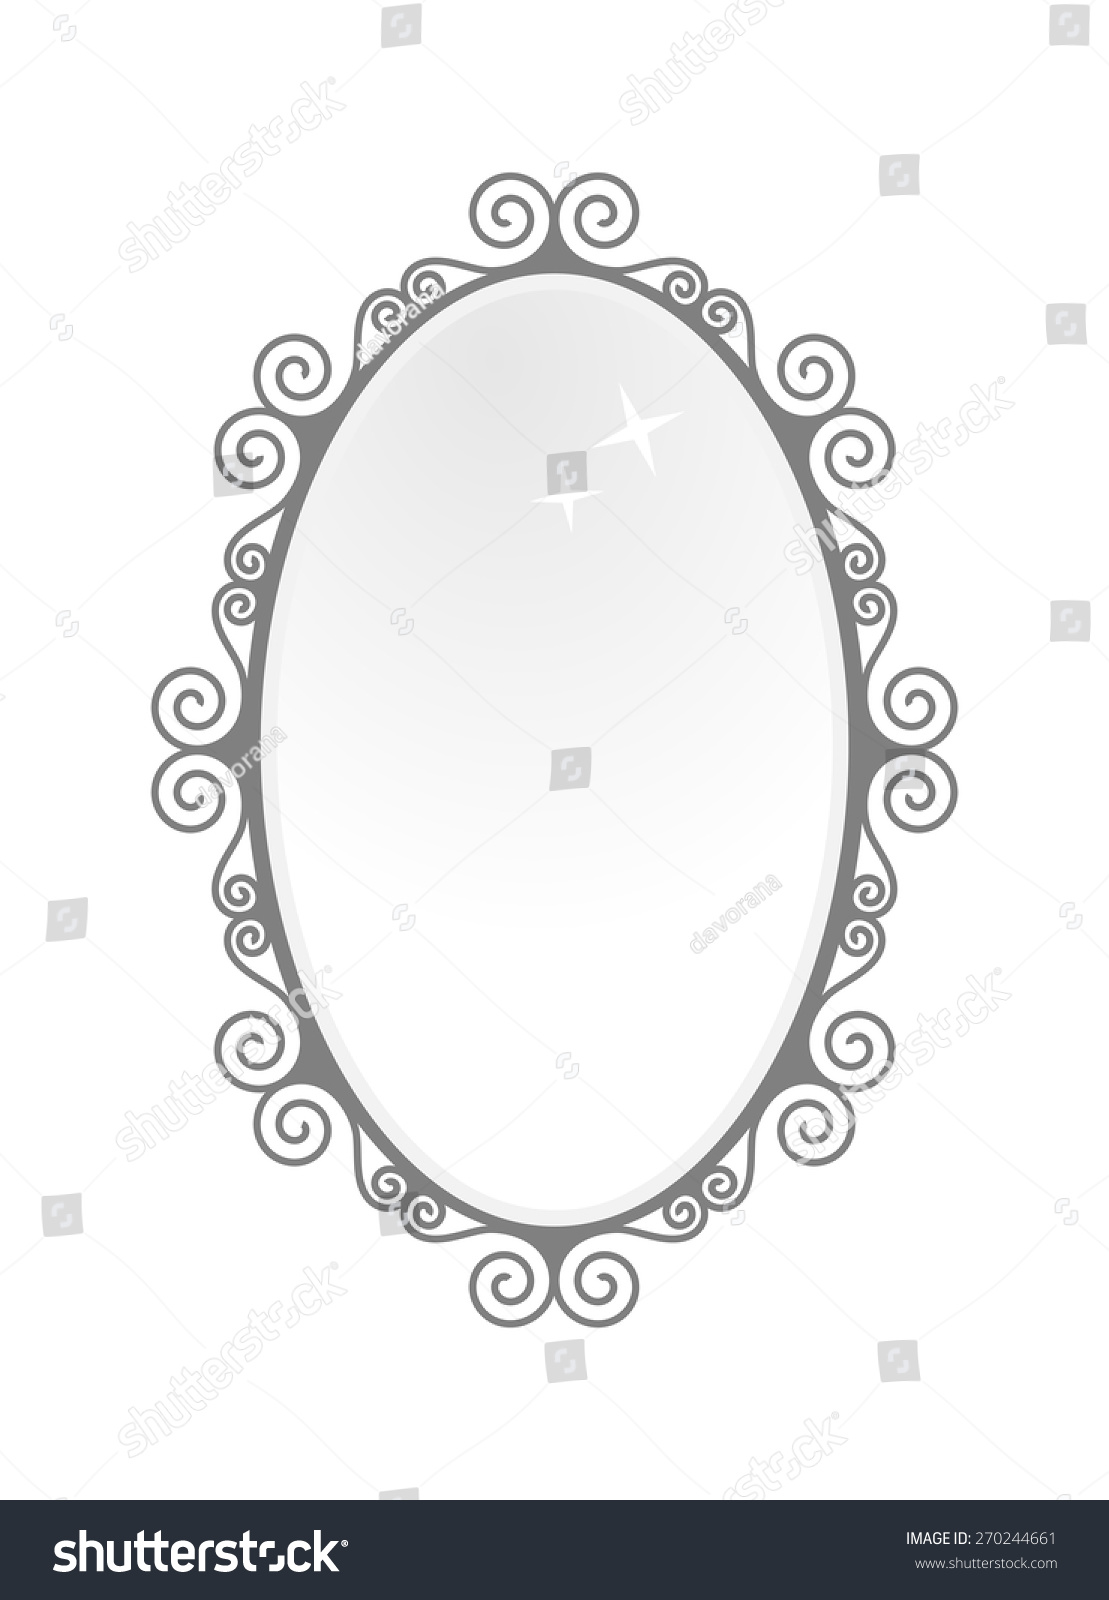 antique oval mirror frame. Black Vintage Oval Mirror Frame. Baroque Antique Style Design, Vector Art Image Illustration, Frame